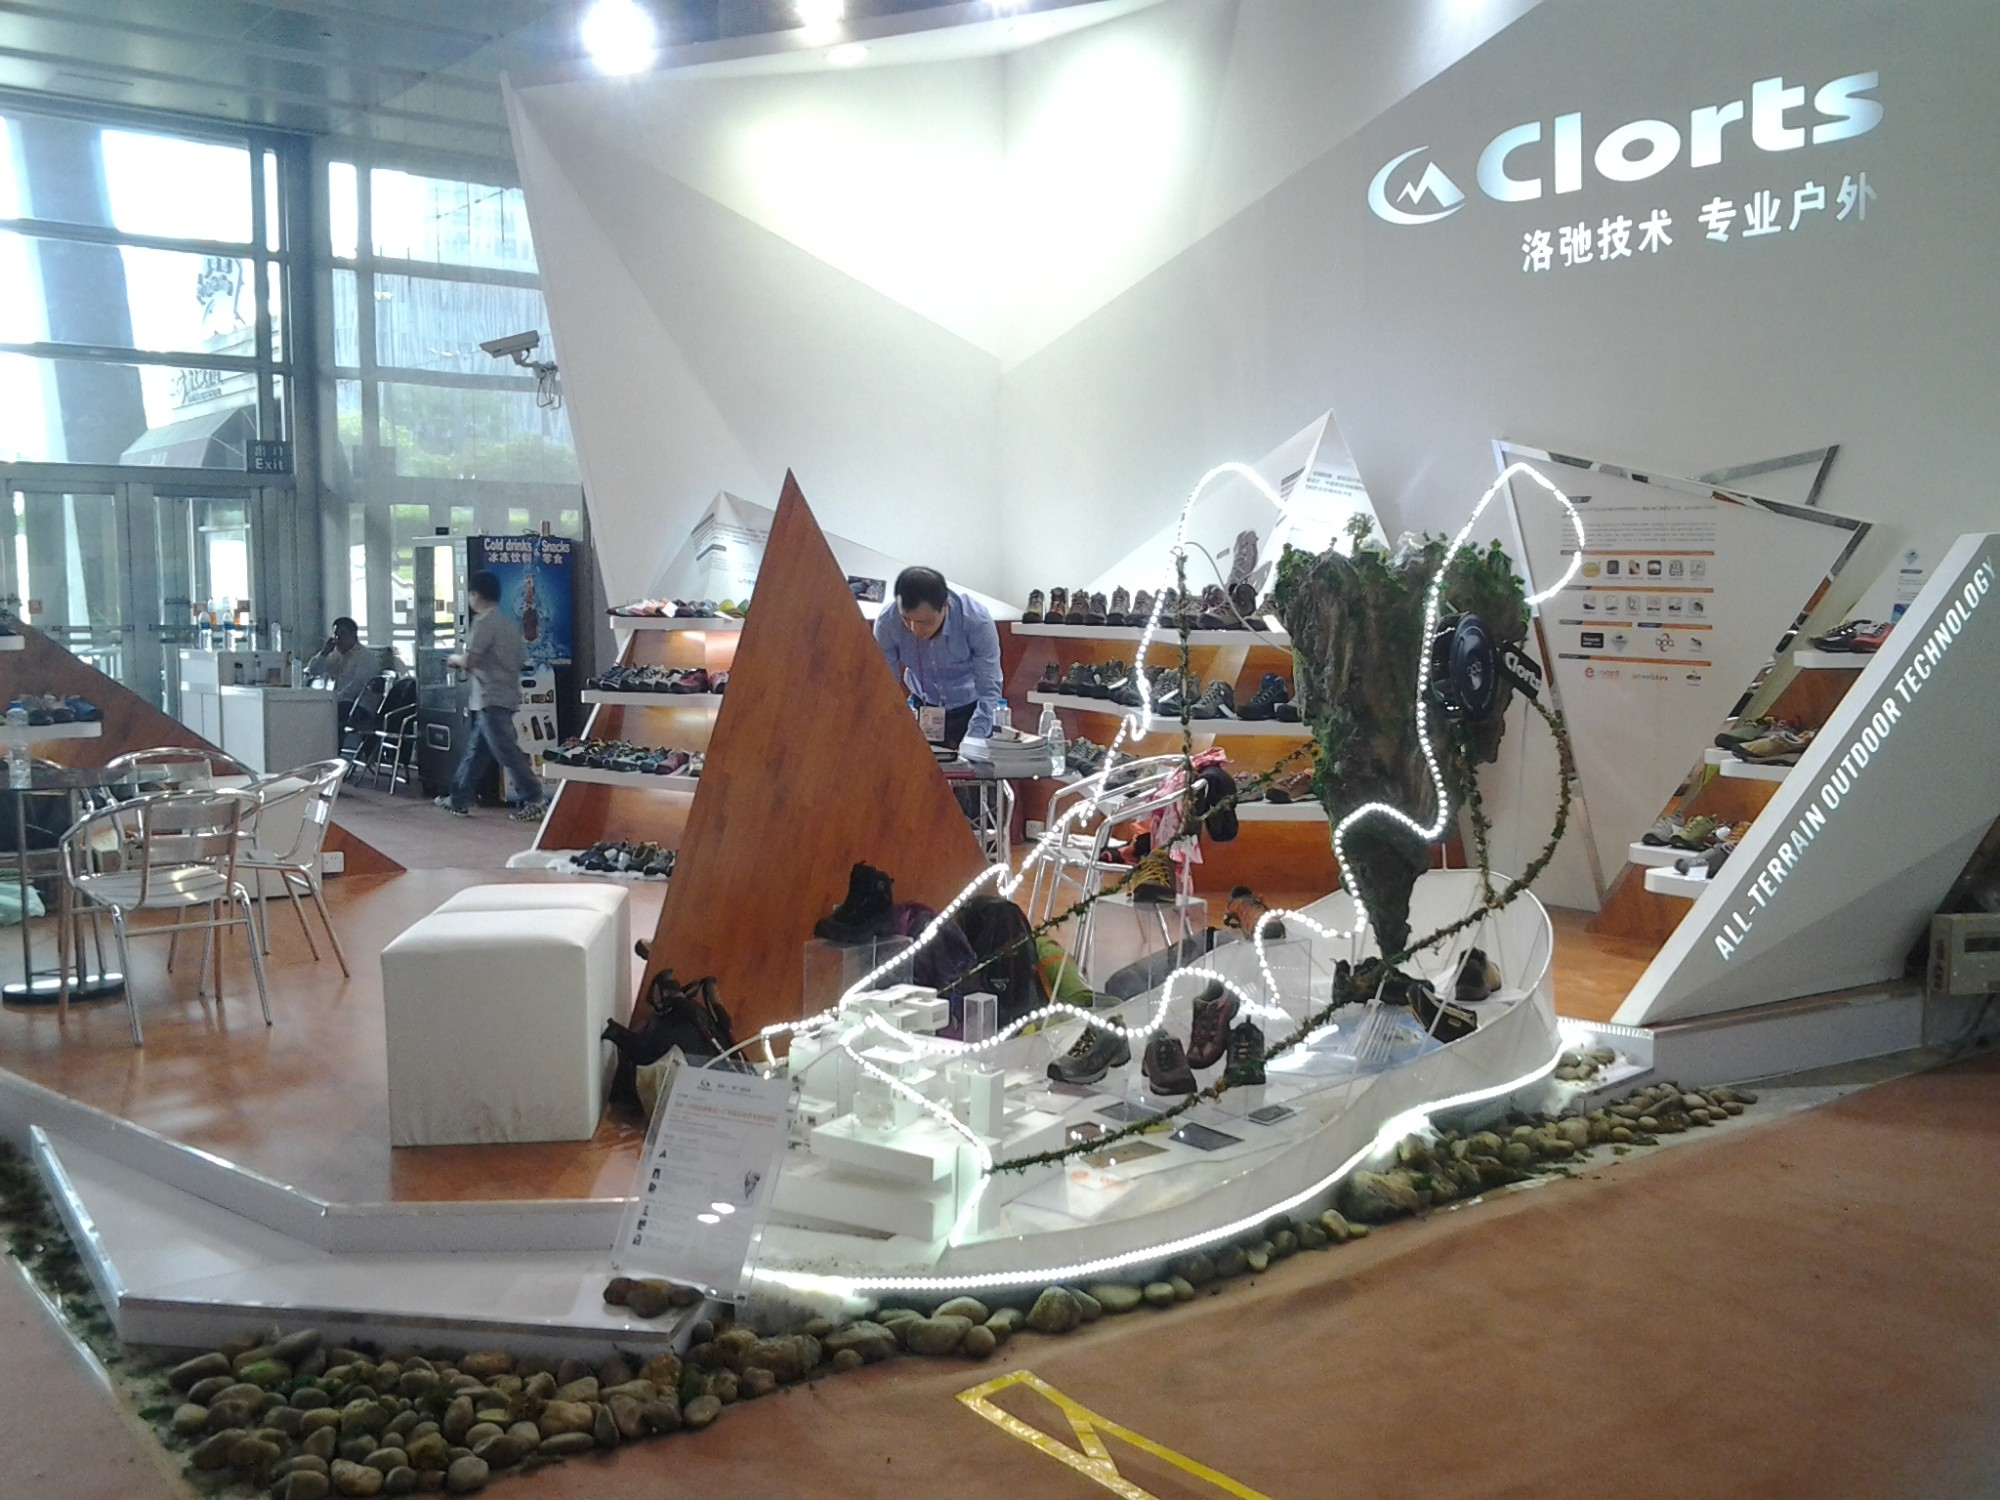 October 2012 The 112th China Import and Export Fair